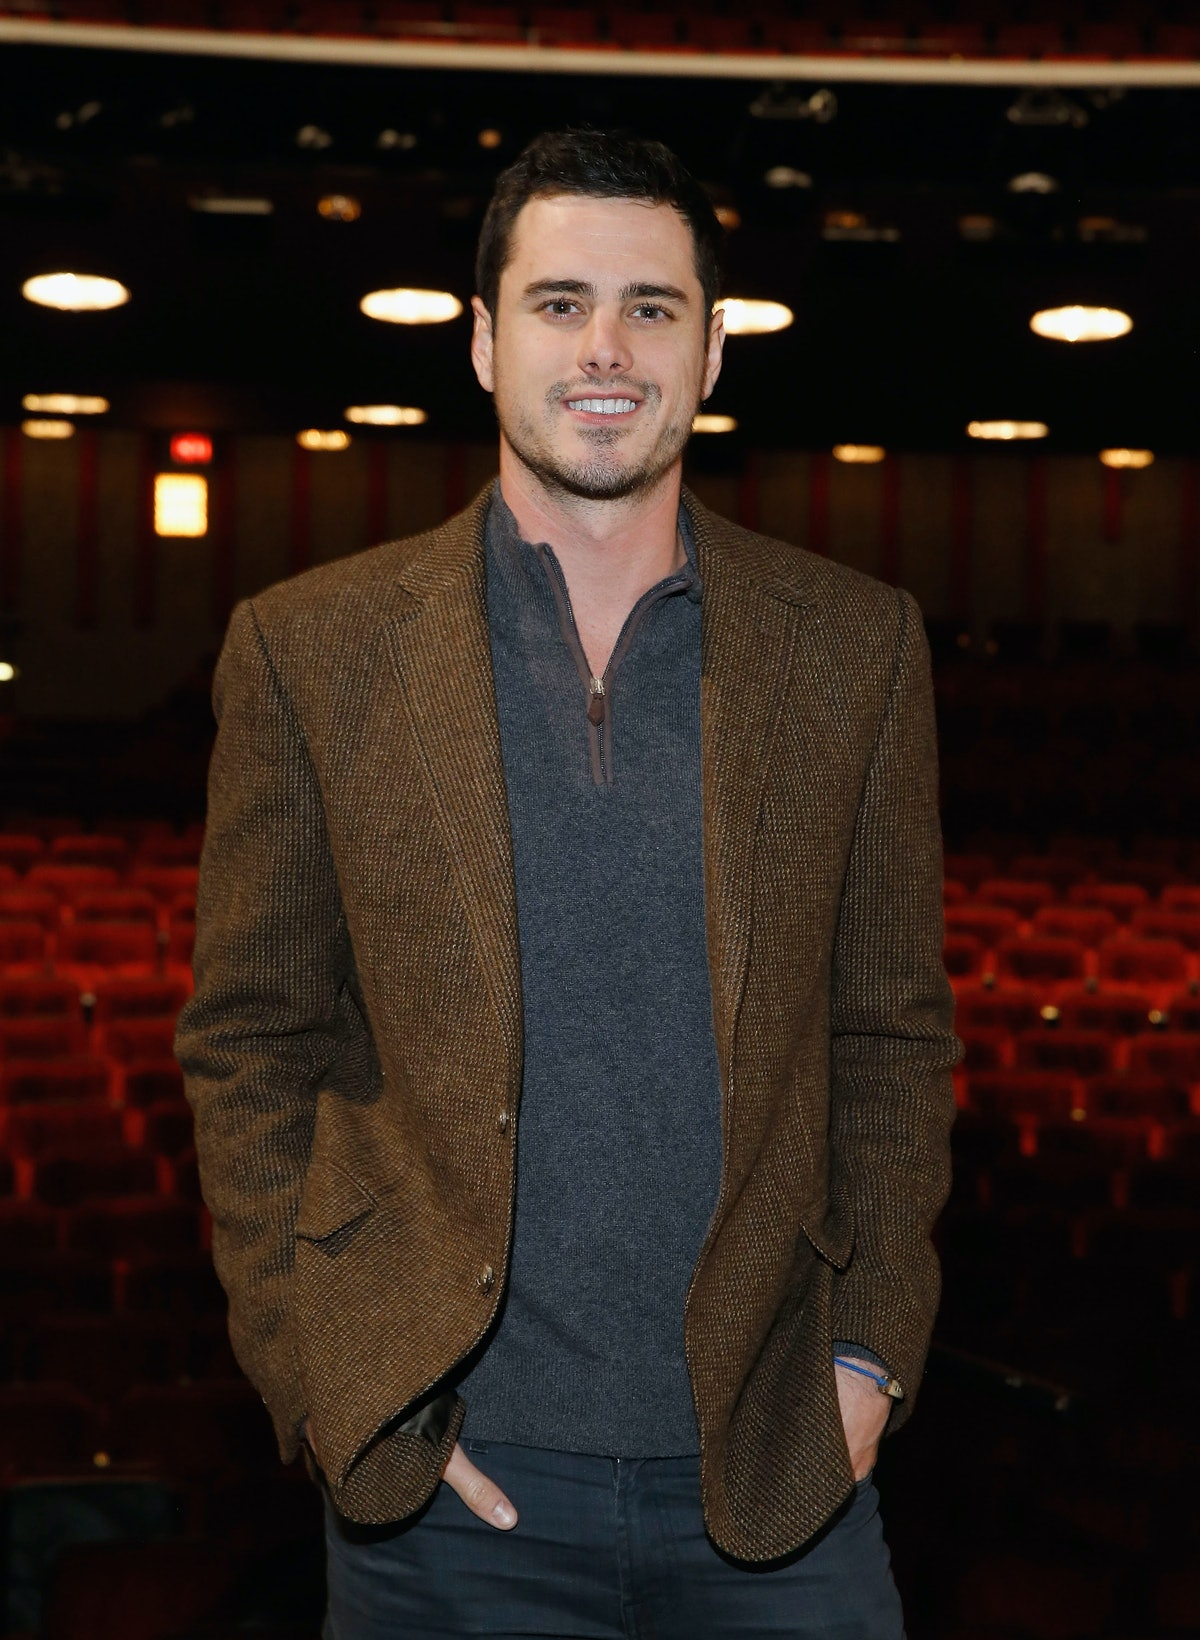 Who Is Ben Higgins Dating In 2019? The Former 'Bachelor' Says He's Taking Things Slow